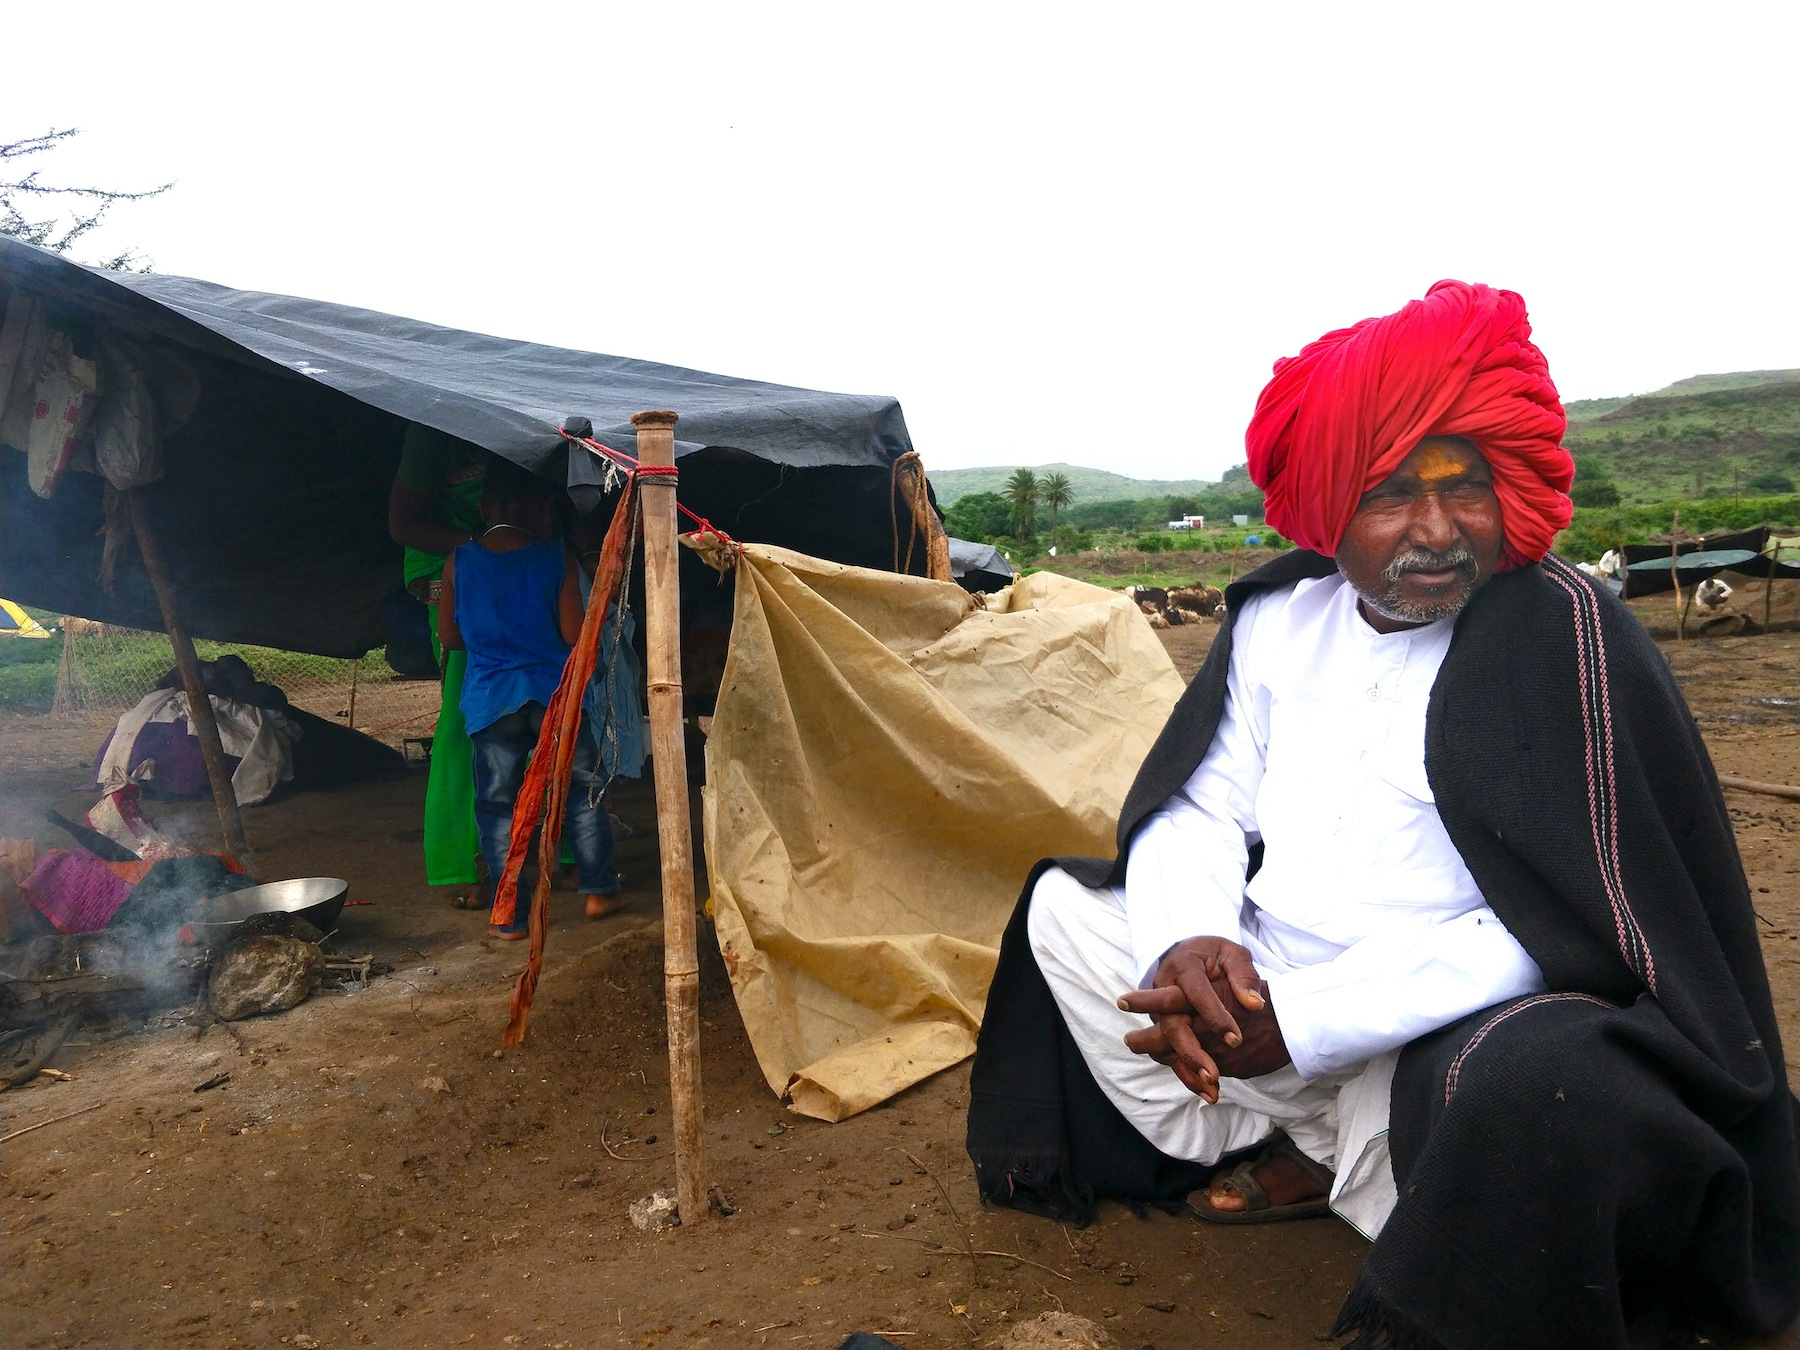 A typical Dhangar man in a turban. This is a community whose lives beautifully intertwine with nature. Photo and Video: Mihir Godbole